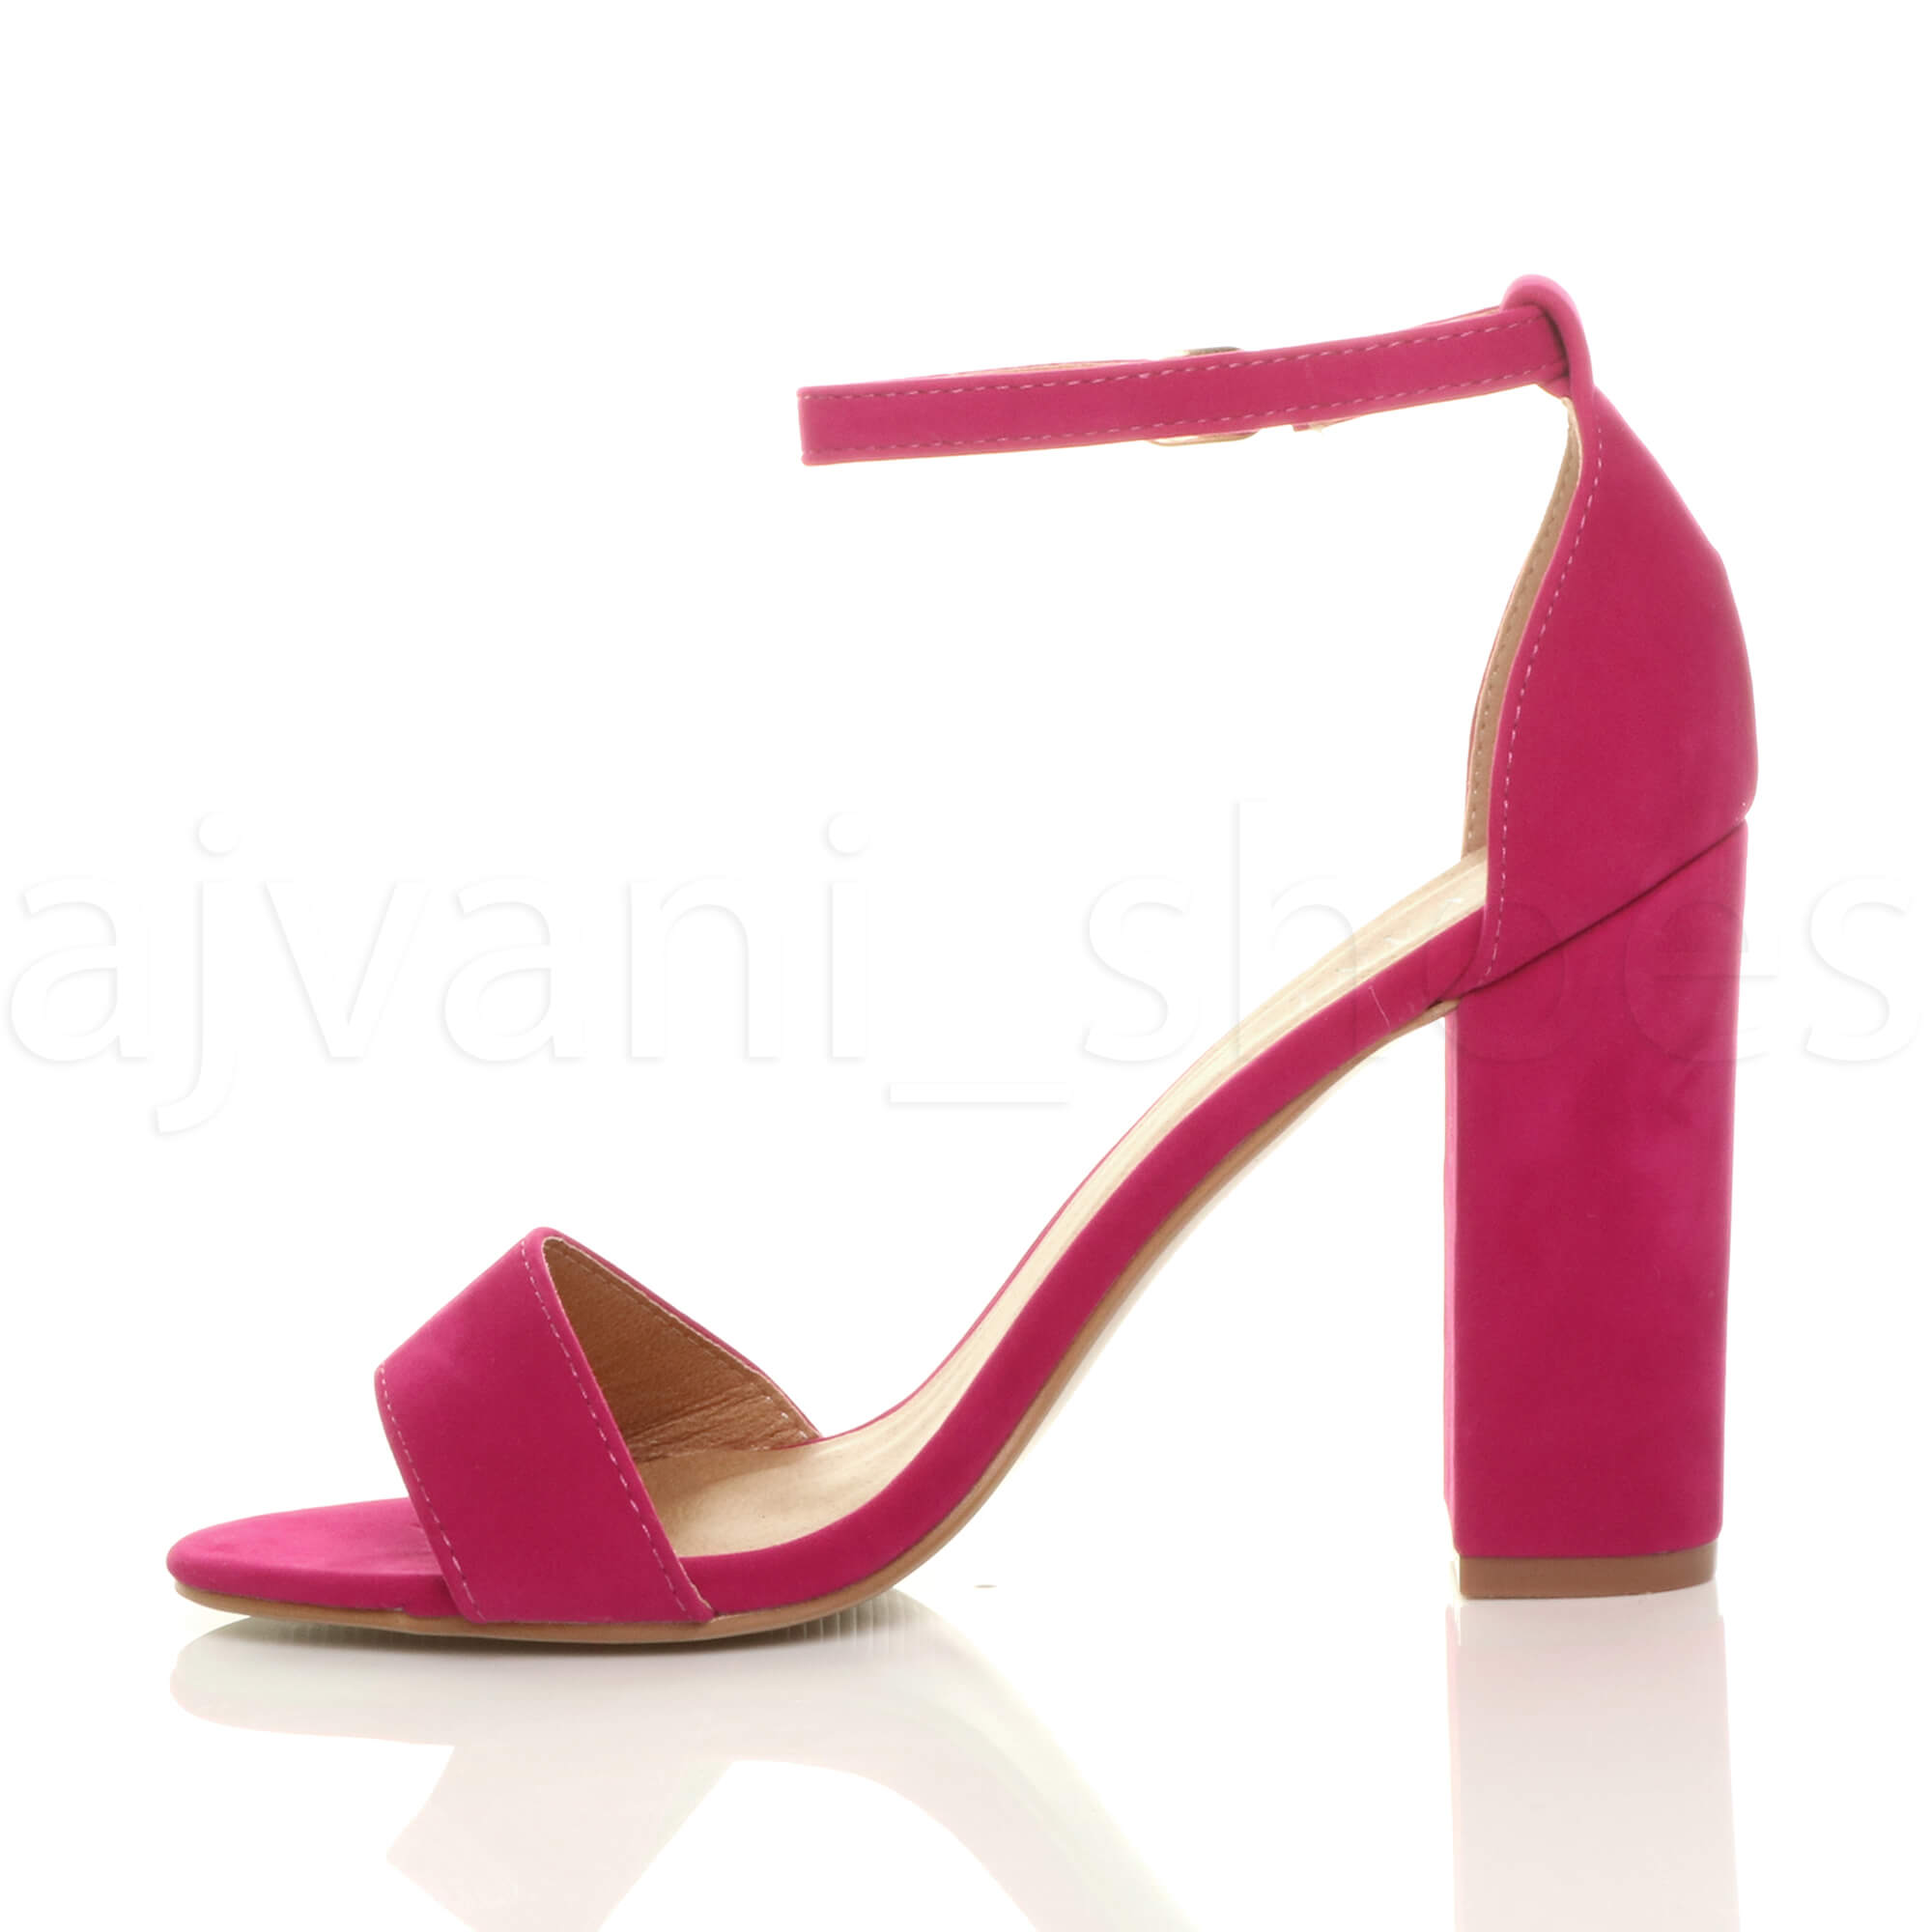 WOMENS-LADIES-BLOCK-HIGH-HEEL-ANKLE-STRAP-PEEP-TOE-STRAPPY-SANDALS-SHOES-SIZE thumbnail 61